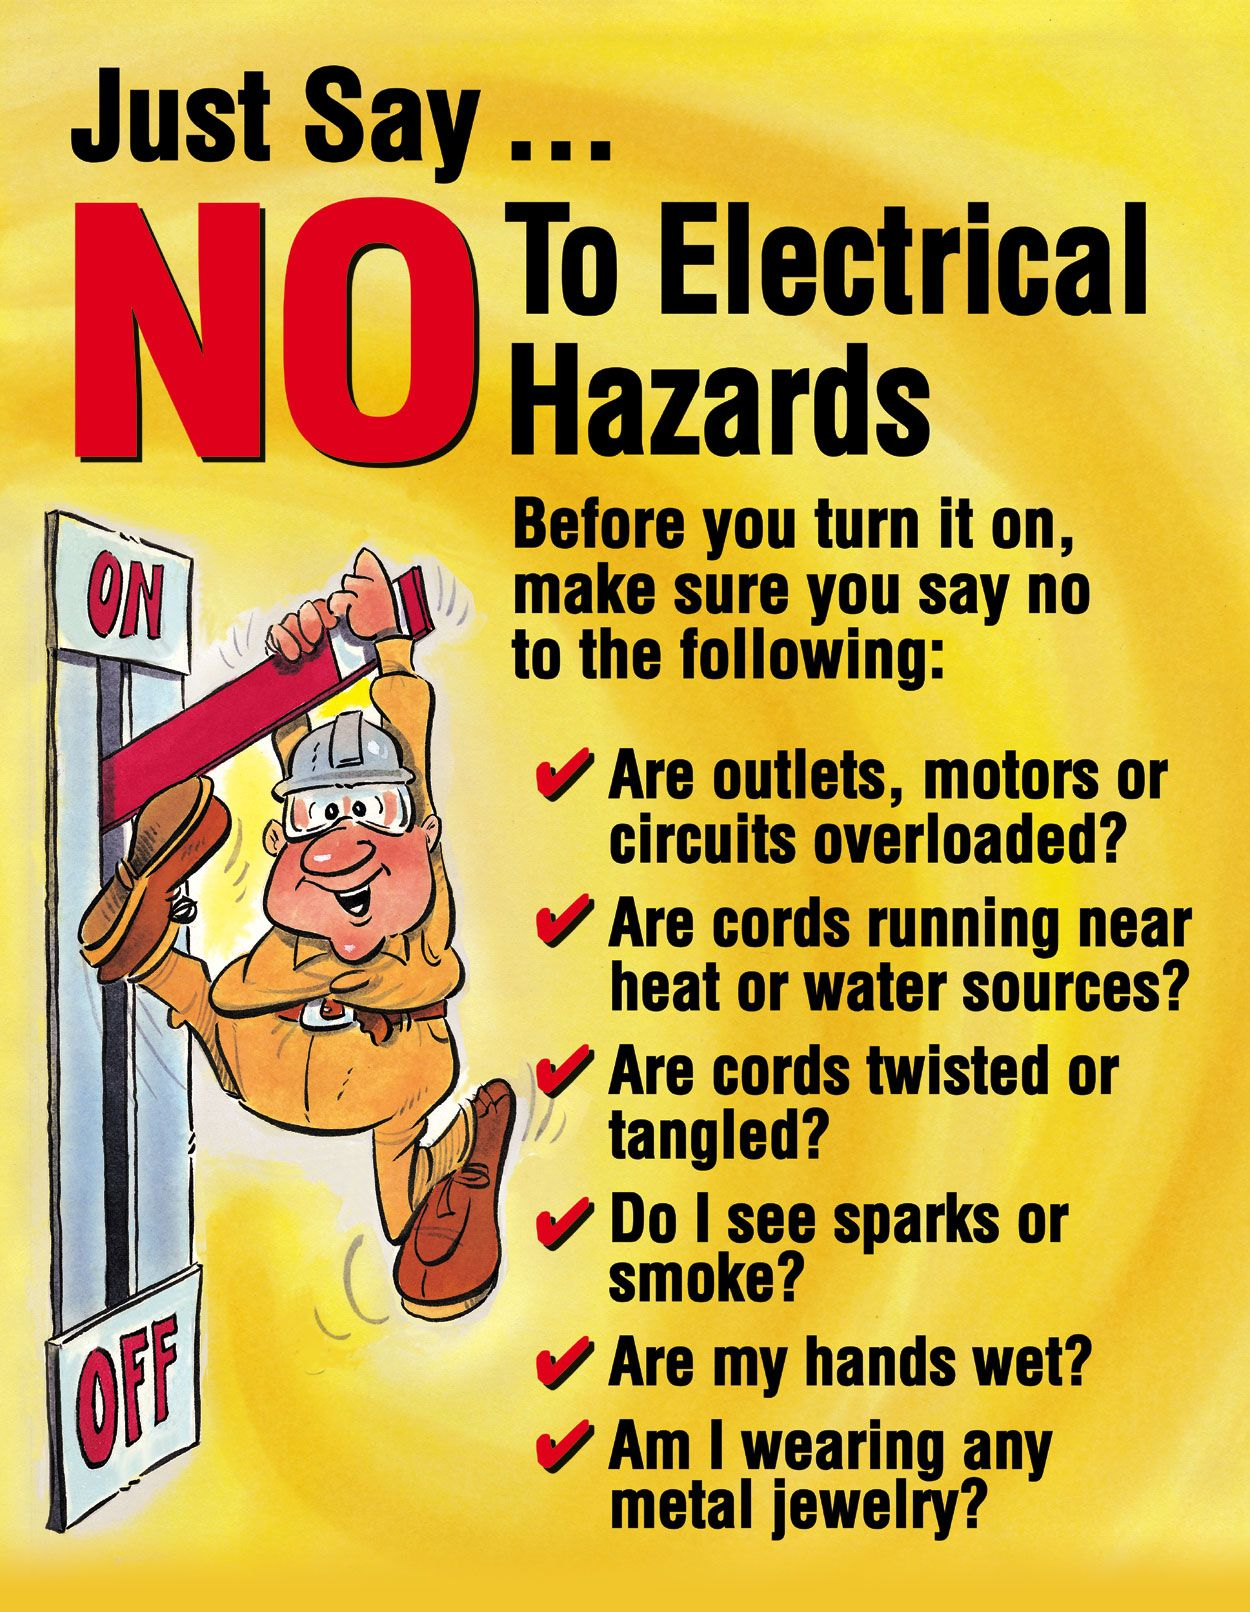 Electrical wiring in the United Kingdom